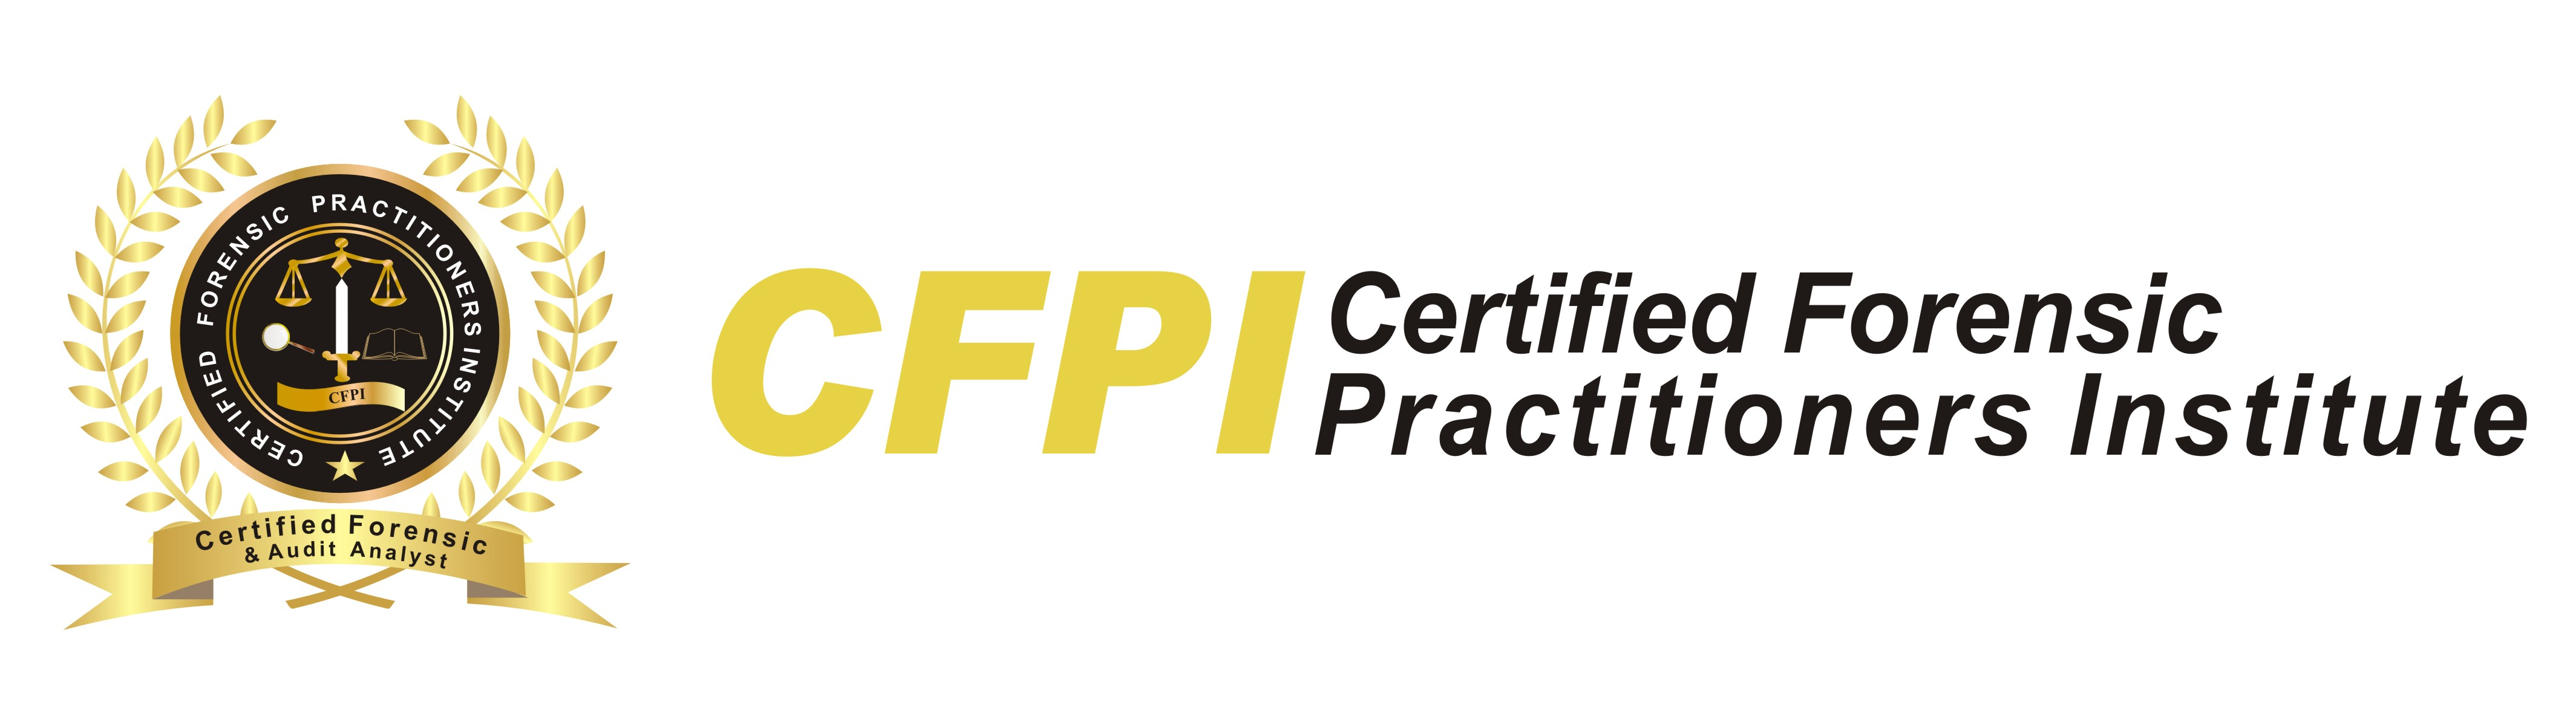 Certified Forensic Practitioners Institute Inc